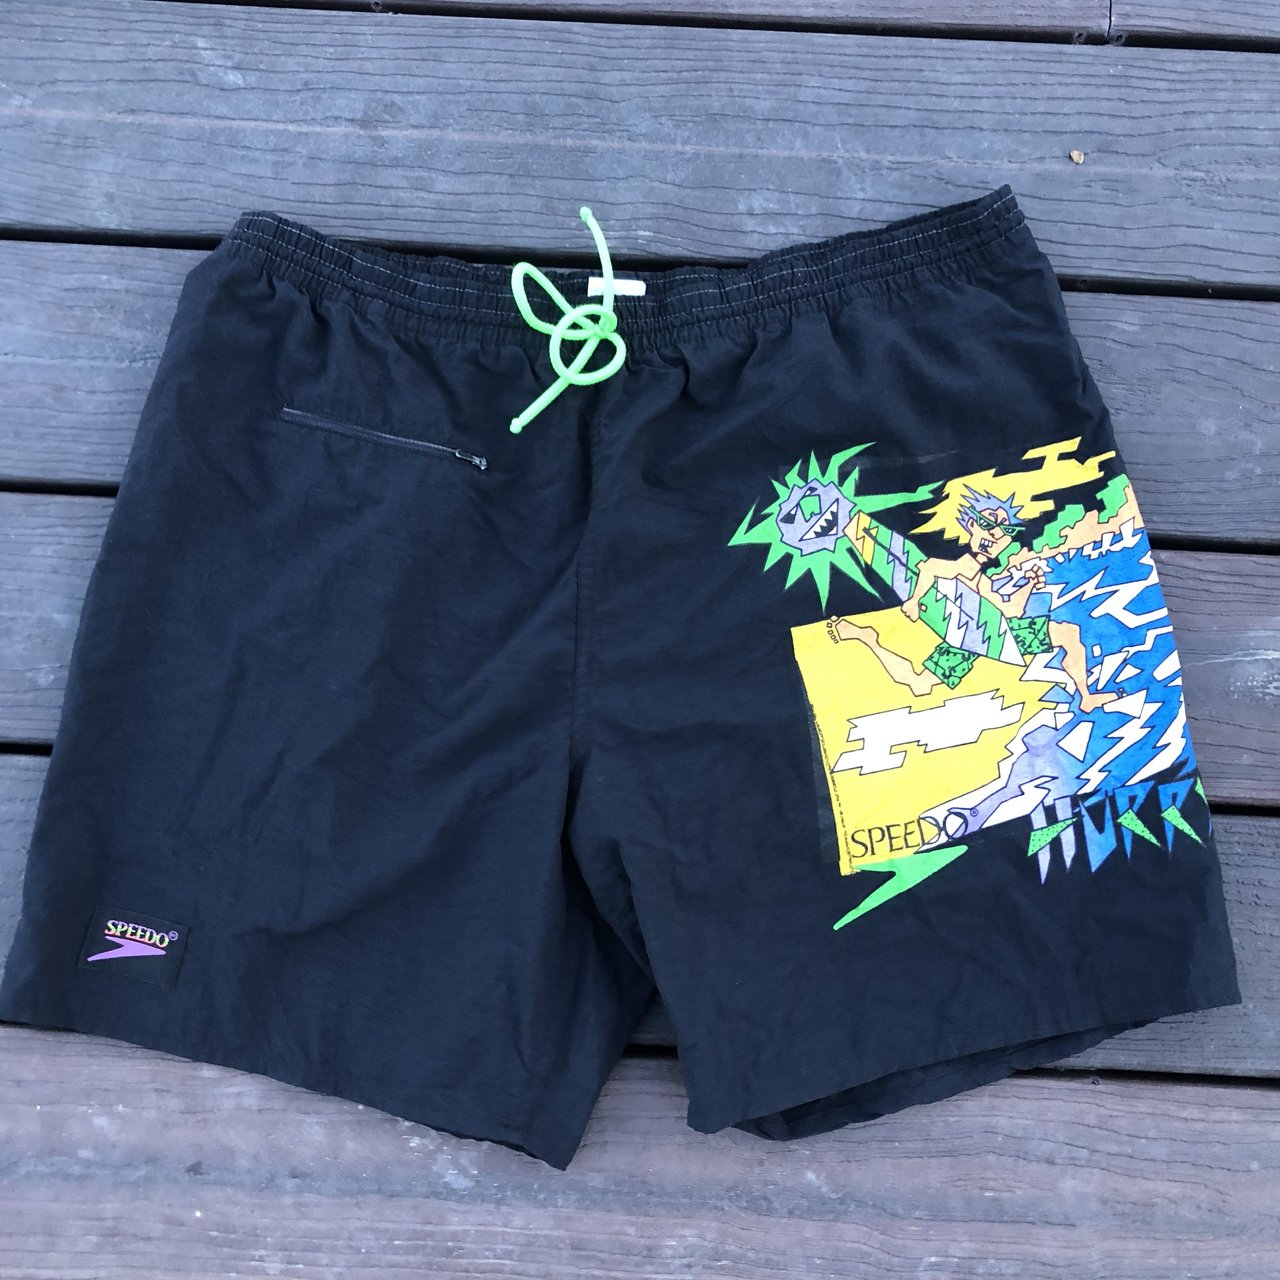 "9fd925ac24 Vintage 90s Speedo Swimming trunks Size XL 40"" Has one No - Depop"